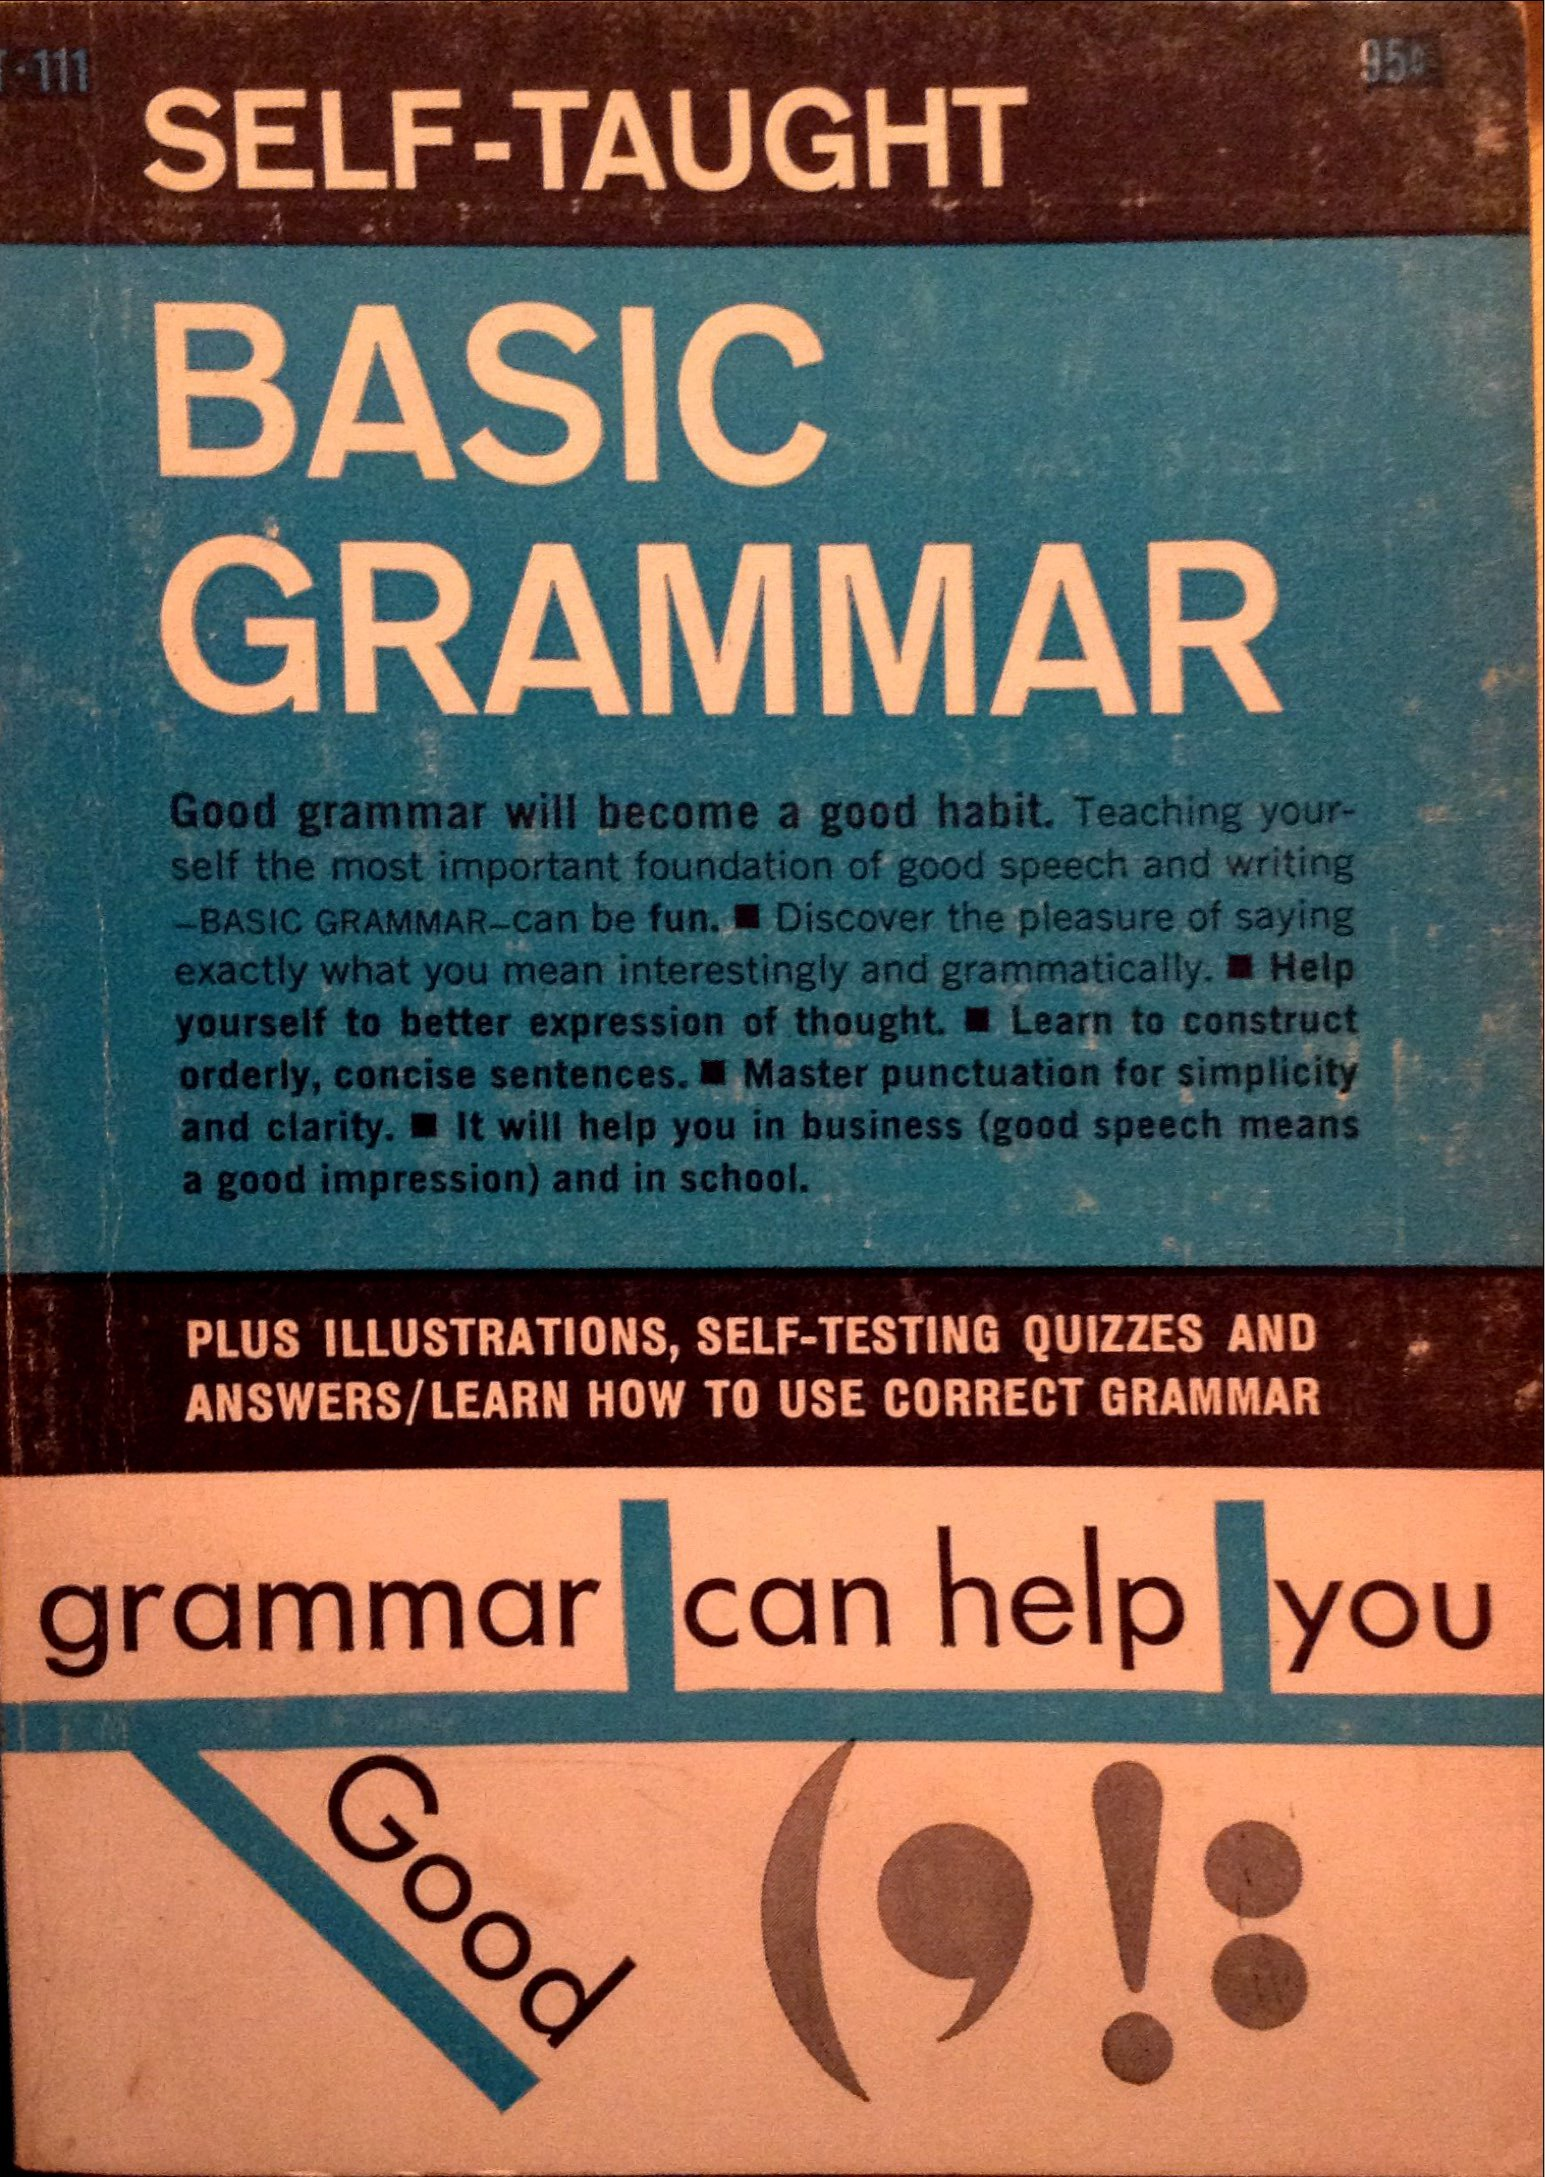 Grammar-self-taught